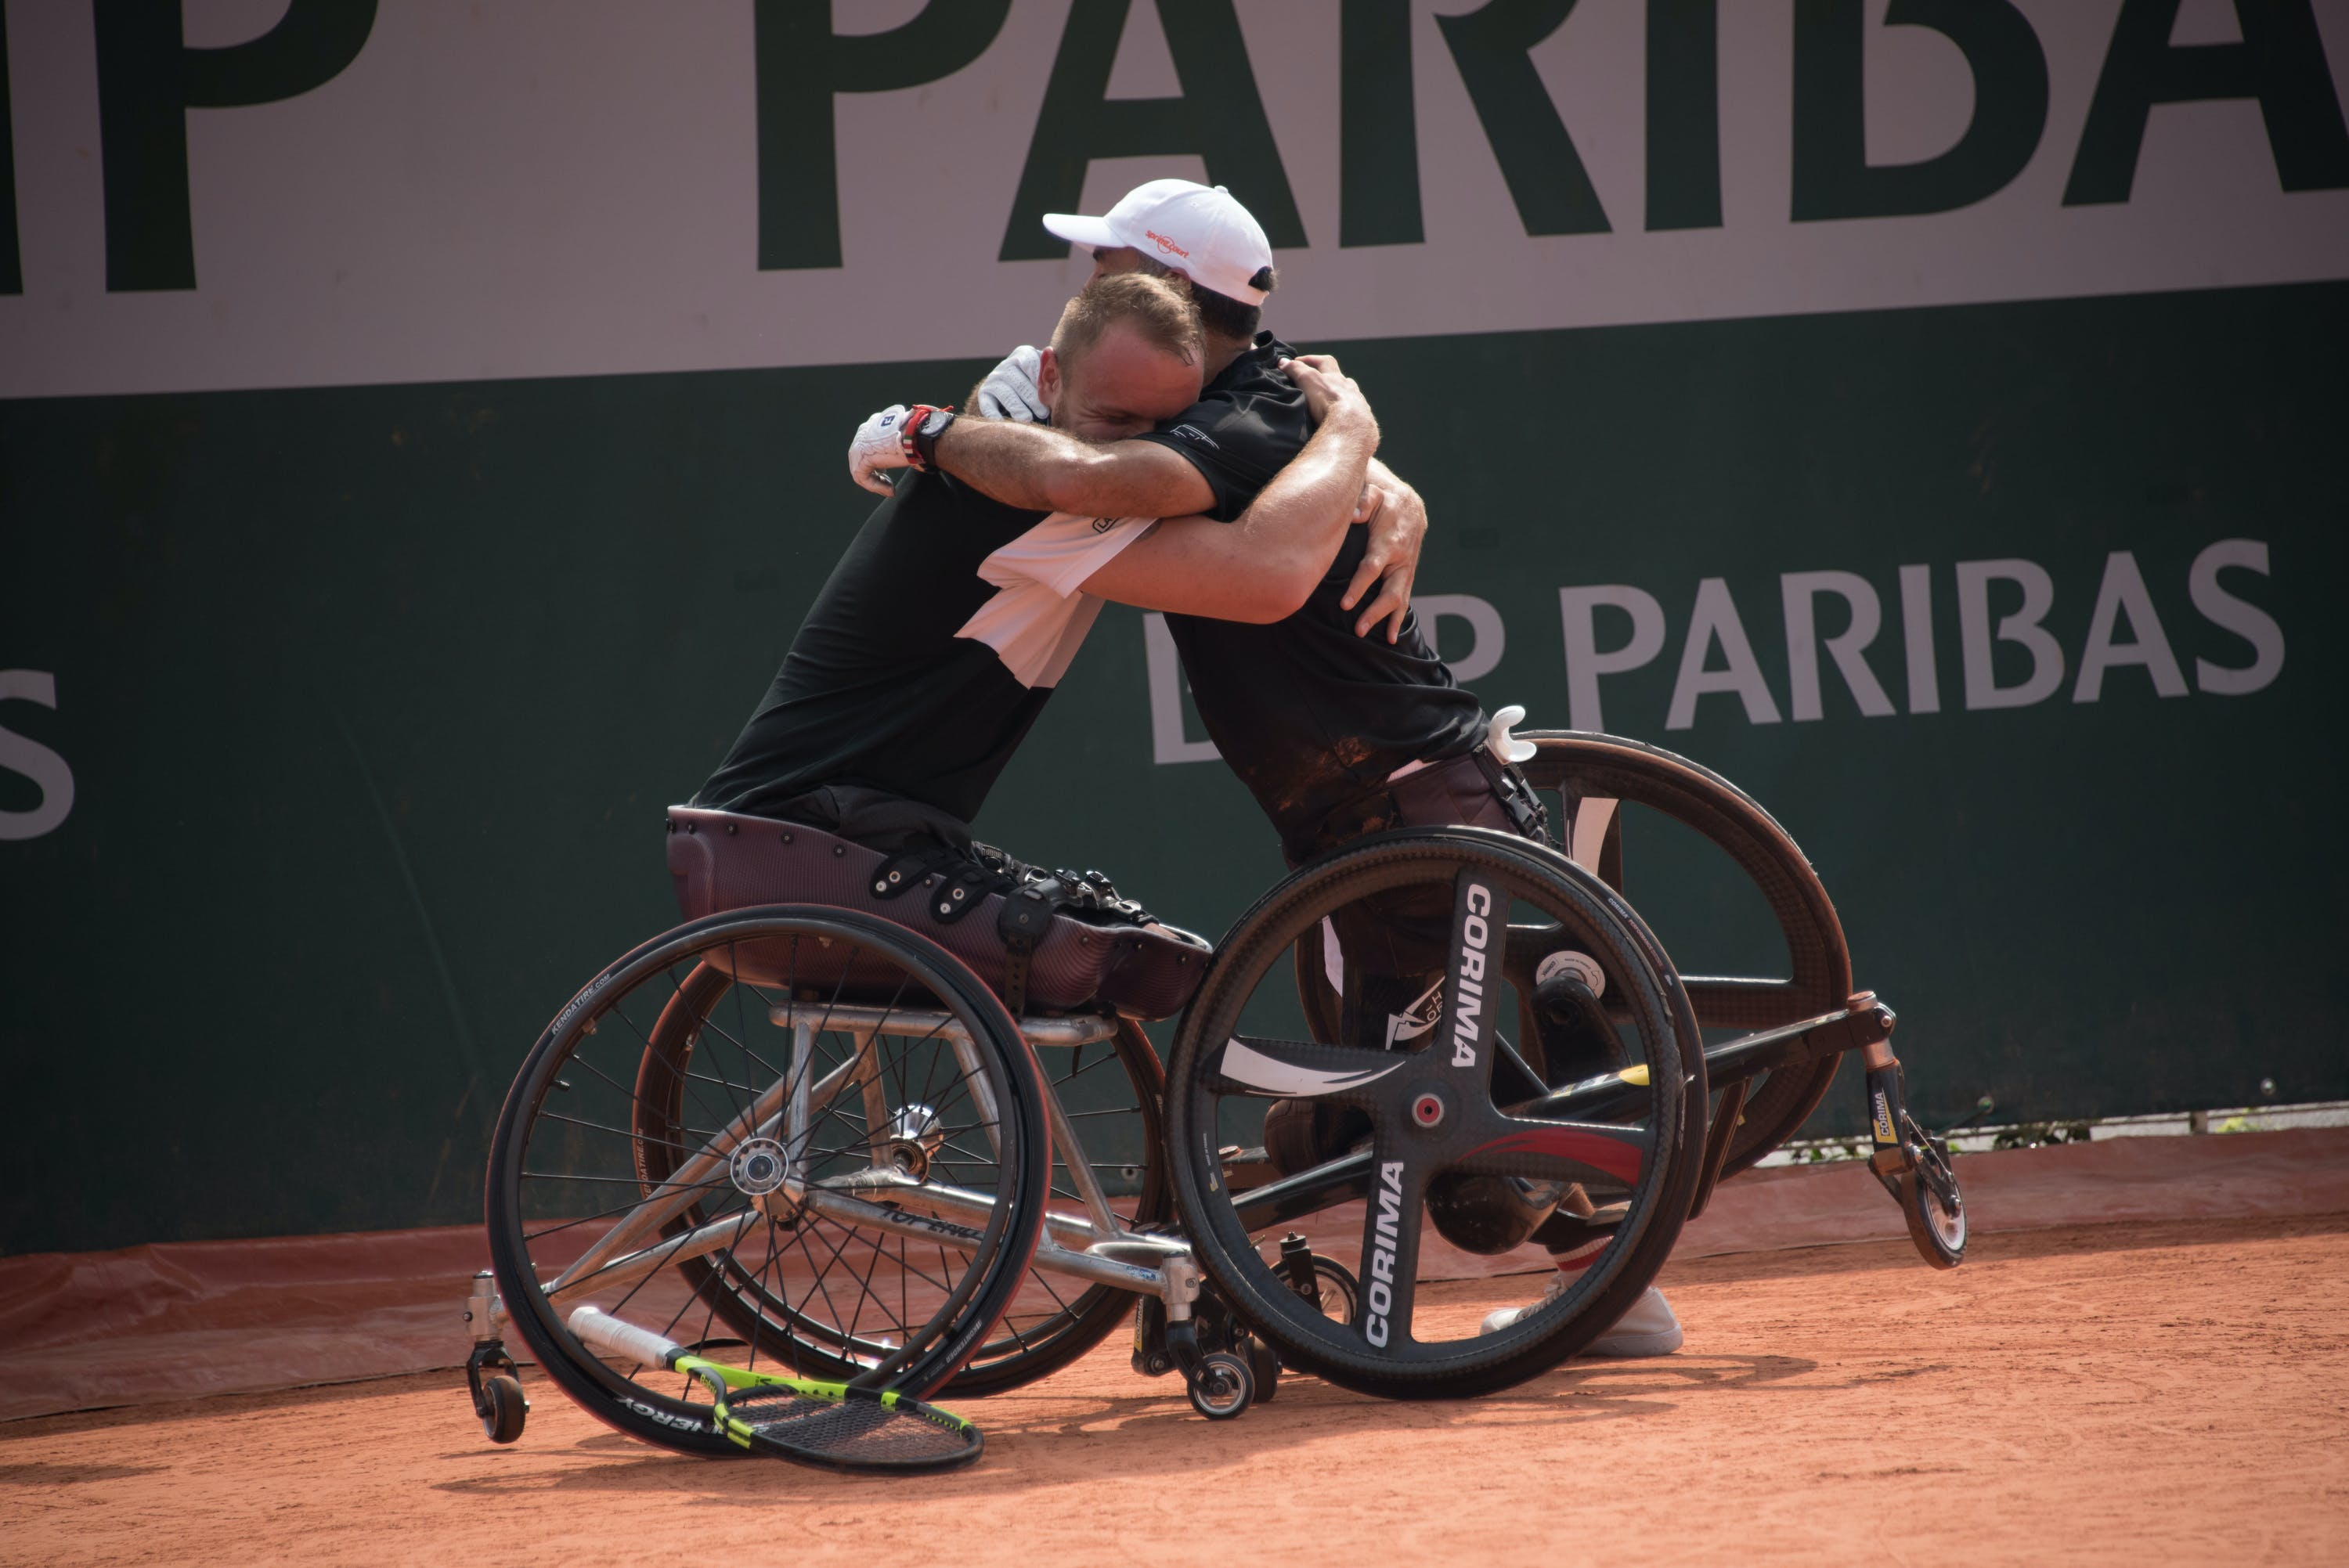 Nicolas Peifer and Stéphane Houdet hugging after winning the title at Roland-Garros 2018.